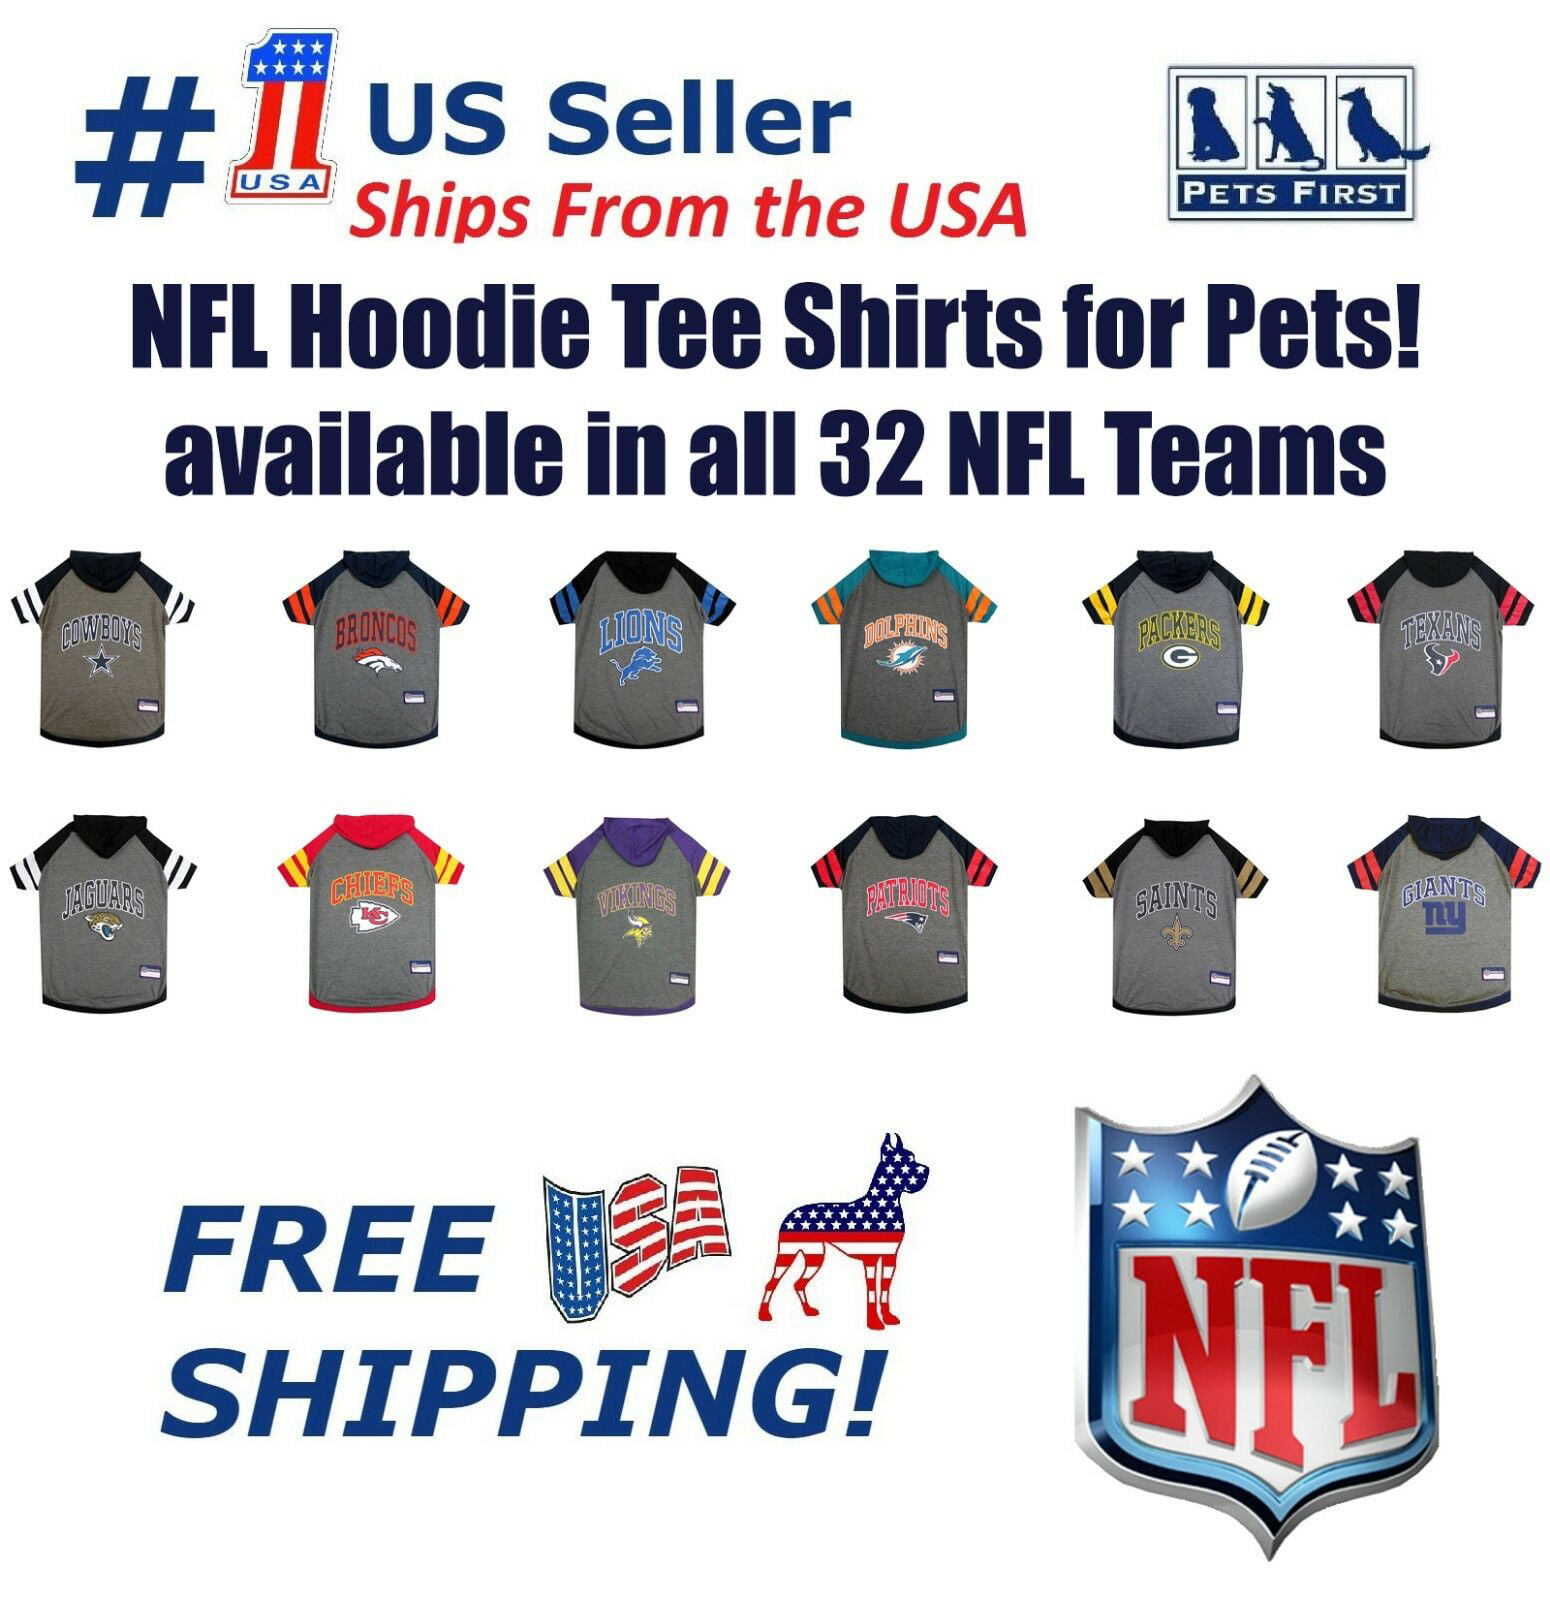 Chicago Bears NFL Pets First Sporty Dog Pet Hoodie Tee Shirt Sizes XS-L